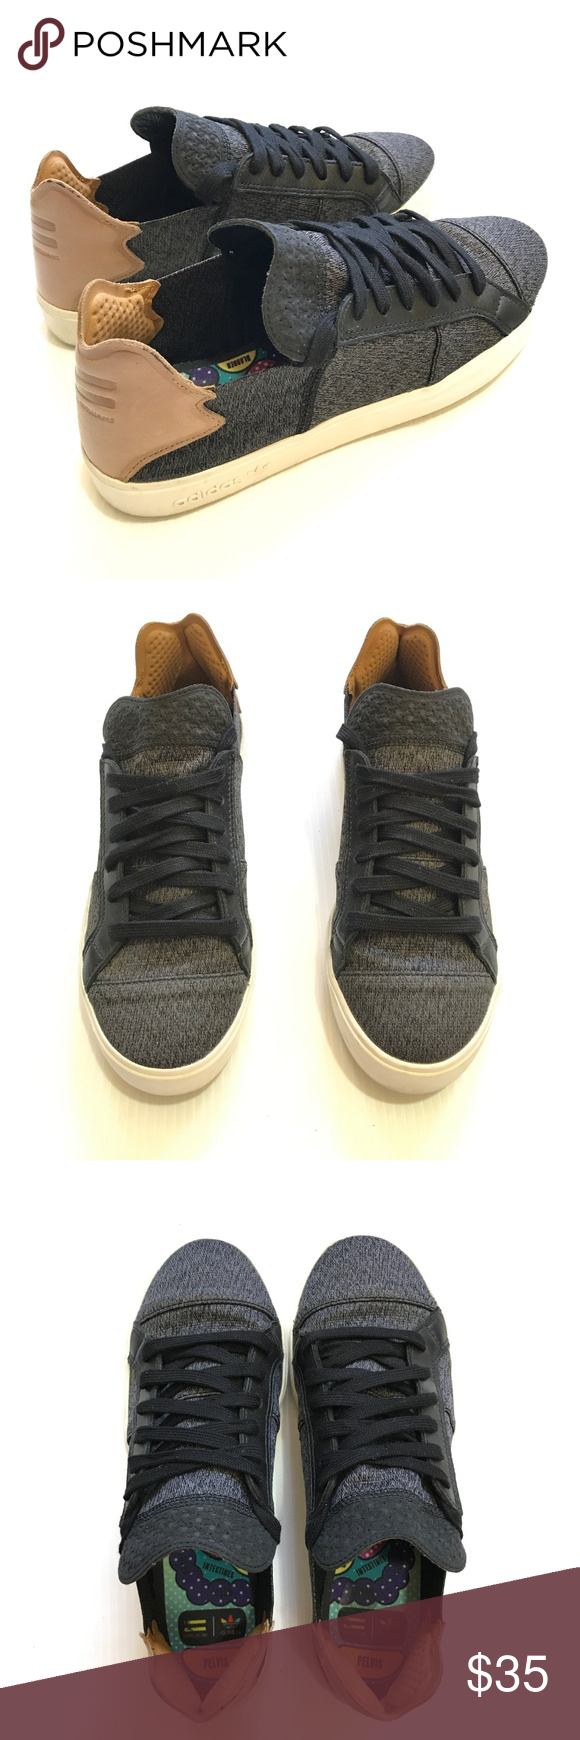 buy popular 394f4 9d46a Pharrell Williams x Adidas Elastic Lace Up 2024 Woven upper. Marled  blackwhite. Looks grey. Black trim surround the laces.